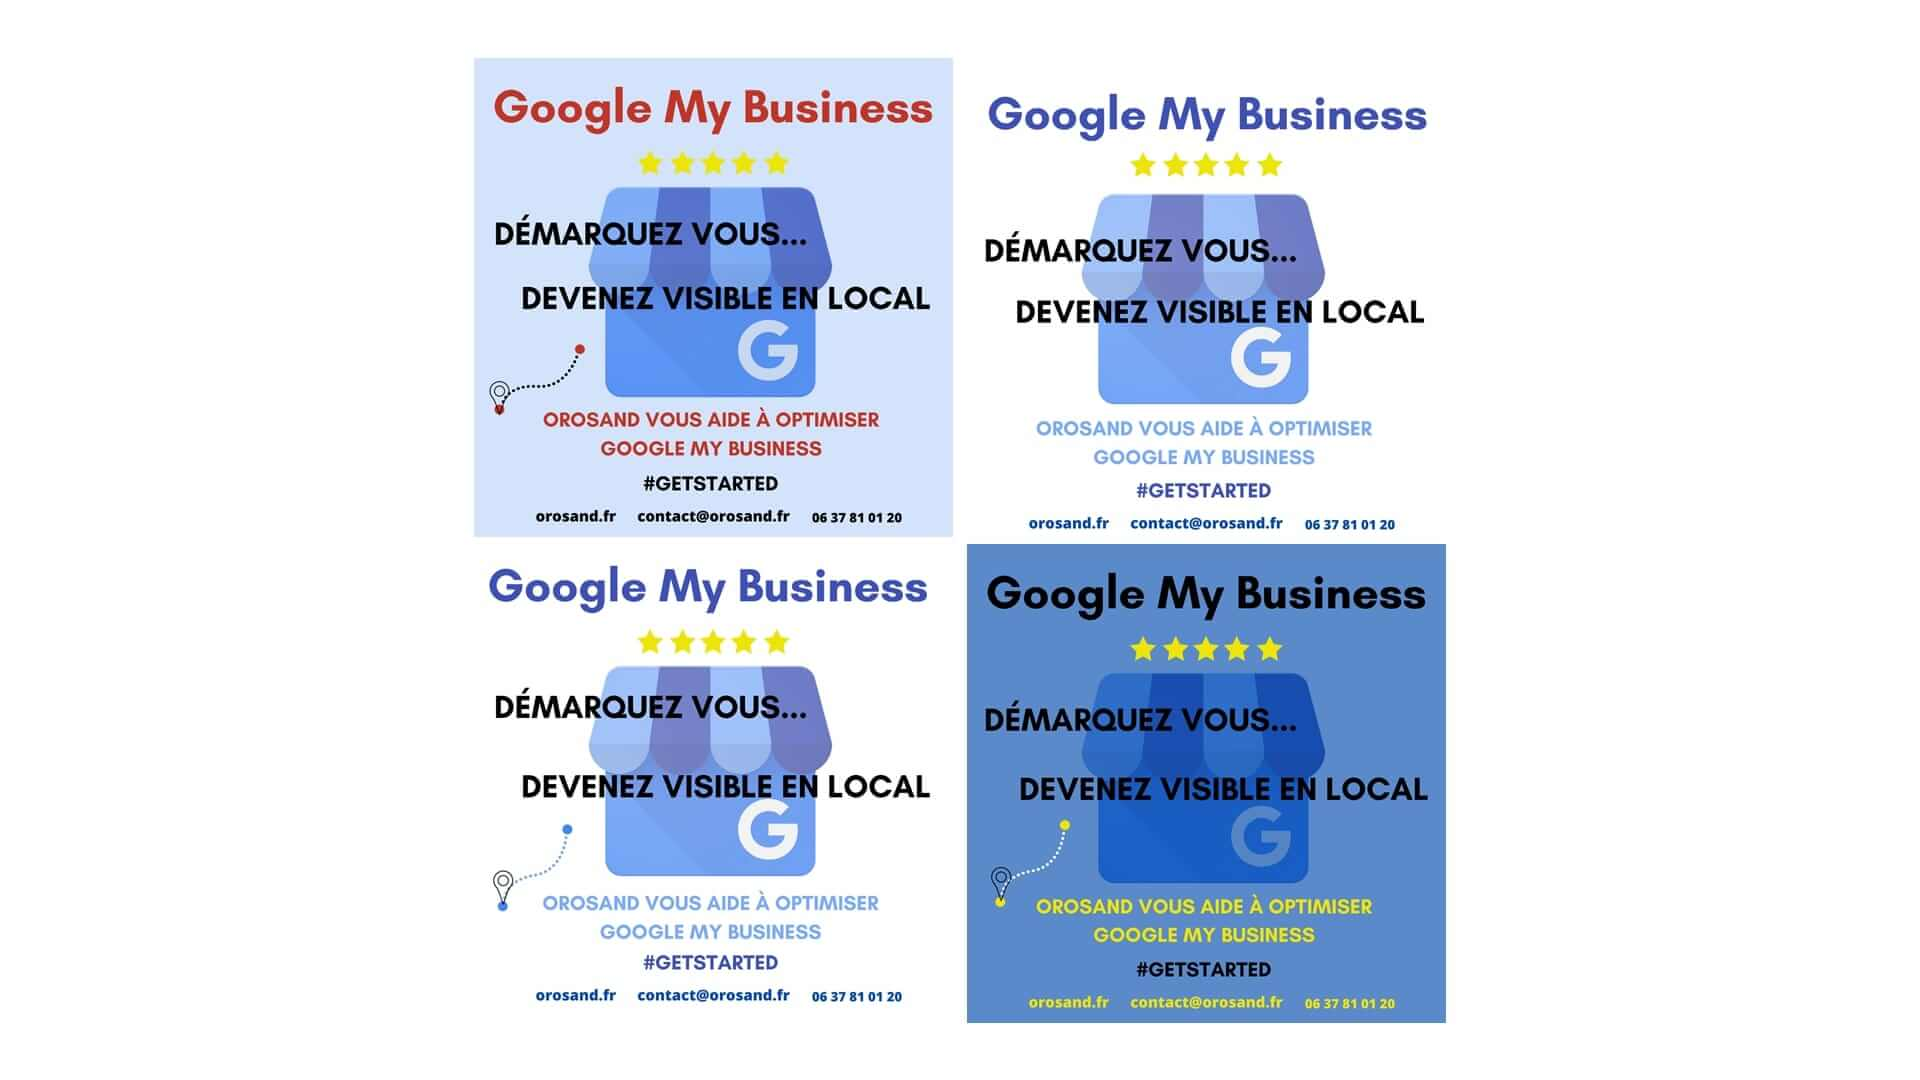 Google My business visibilité locale